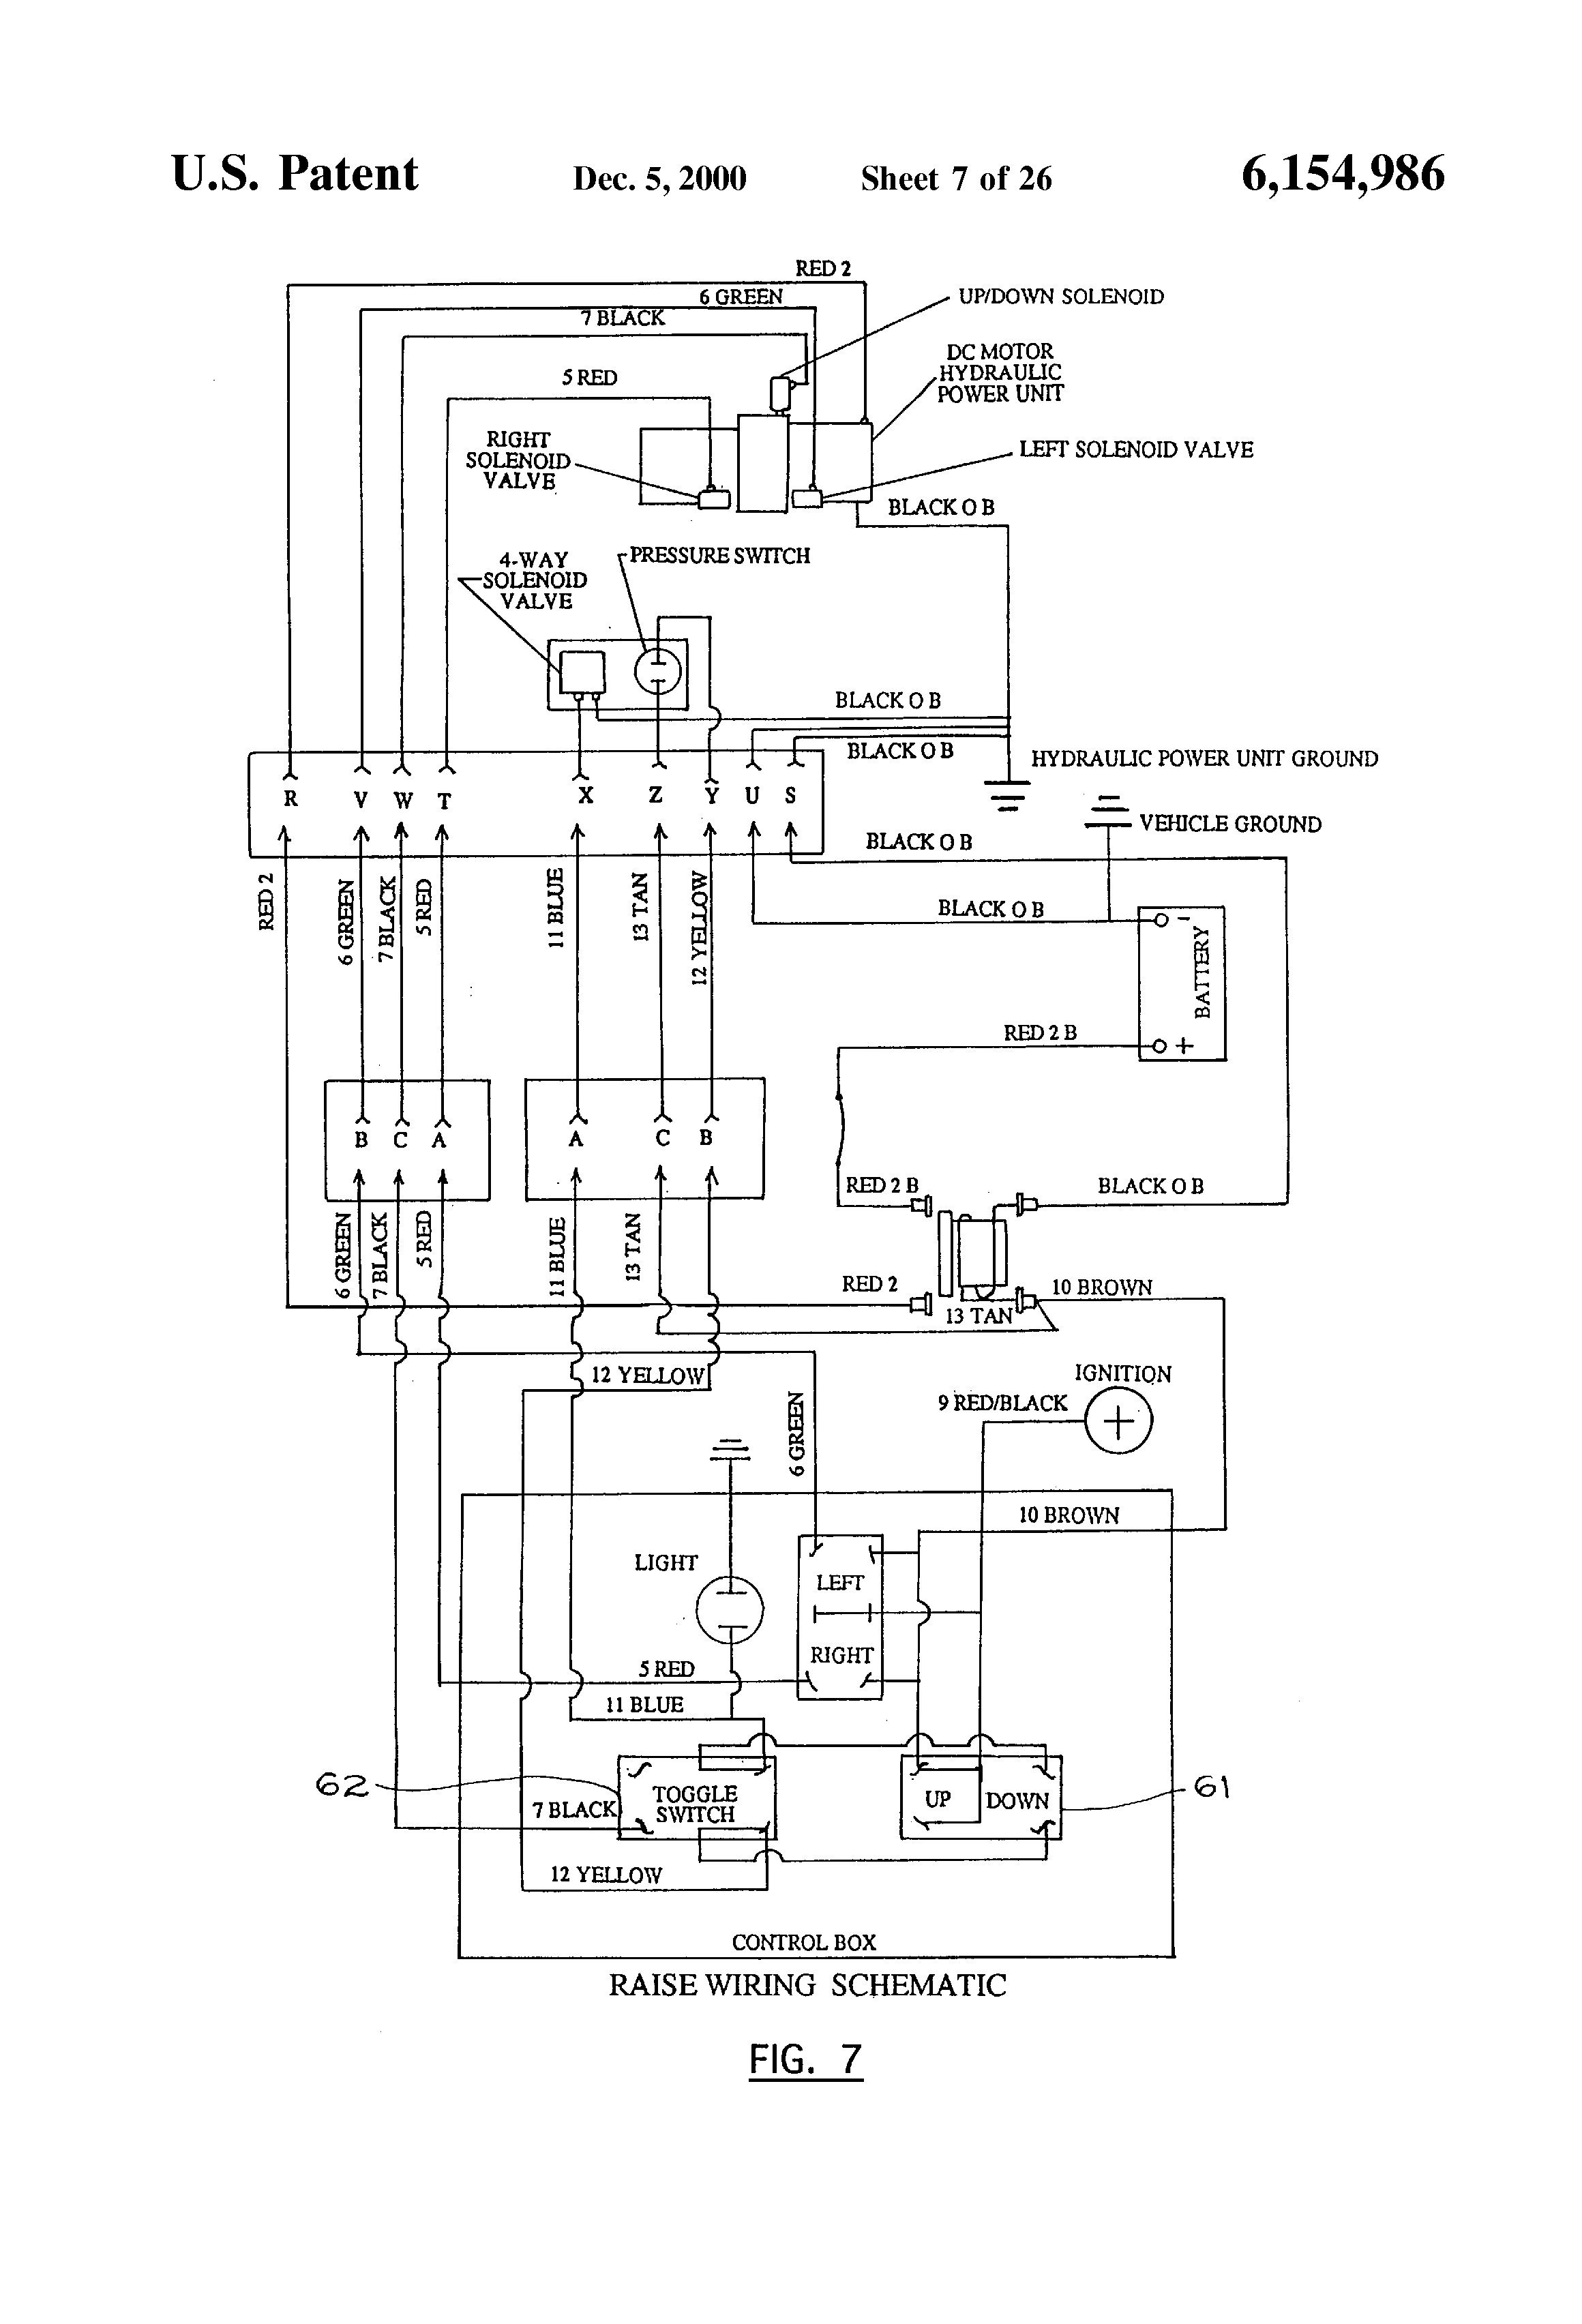 Western Plow Wiring Diagram 1988 - Wiring Diagrams • on western snow plow manual, western snow plow dimensions, western snow plow piston, western unimount plow wiring, western unimount plow electrical installation, western unimount diagram, western snow plow replacement parts, western plow motor diagram, western snow plow power supply, e47 pump diagram, western plow control diagram, western snow plows for pickups, meyer plow mount diagram, western snow plow valve, western snow plow shock absorber, western plow wiring schematic, western snow plow motor, old western plow diagram, 2004 dodge durango rear bumper diagram, western snow plows dodge trucks,